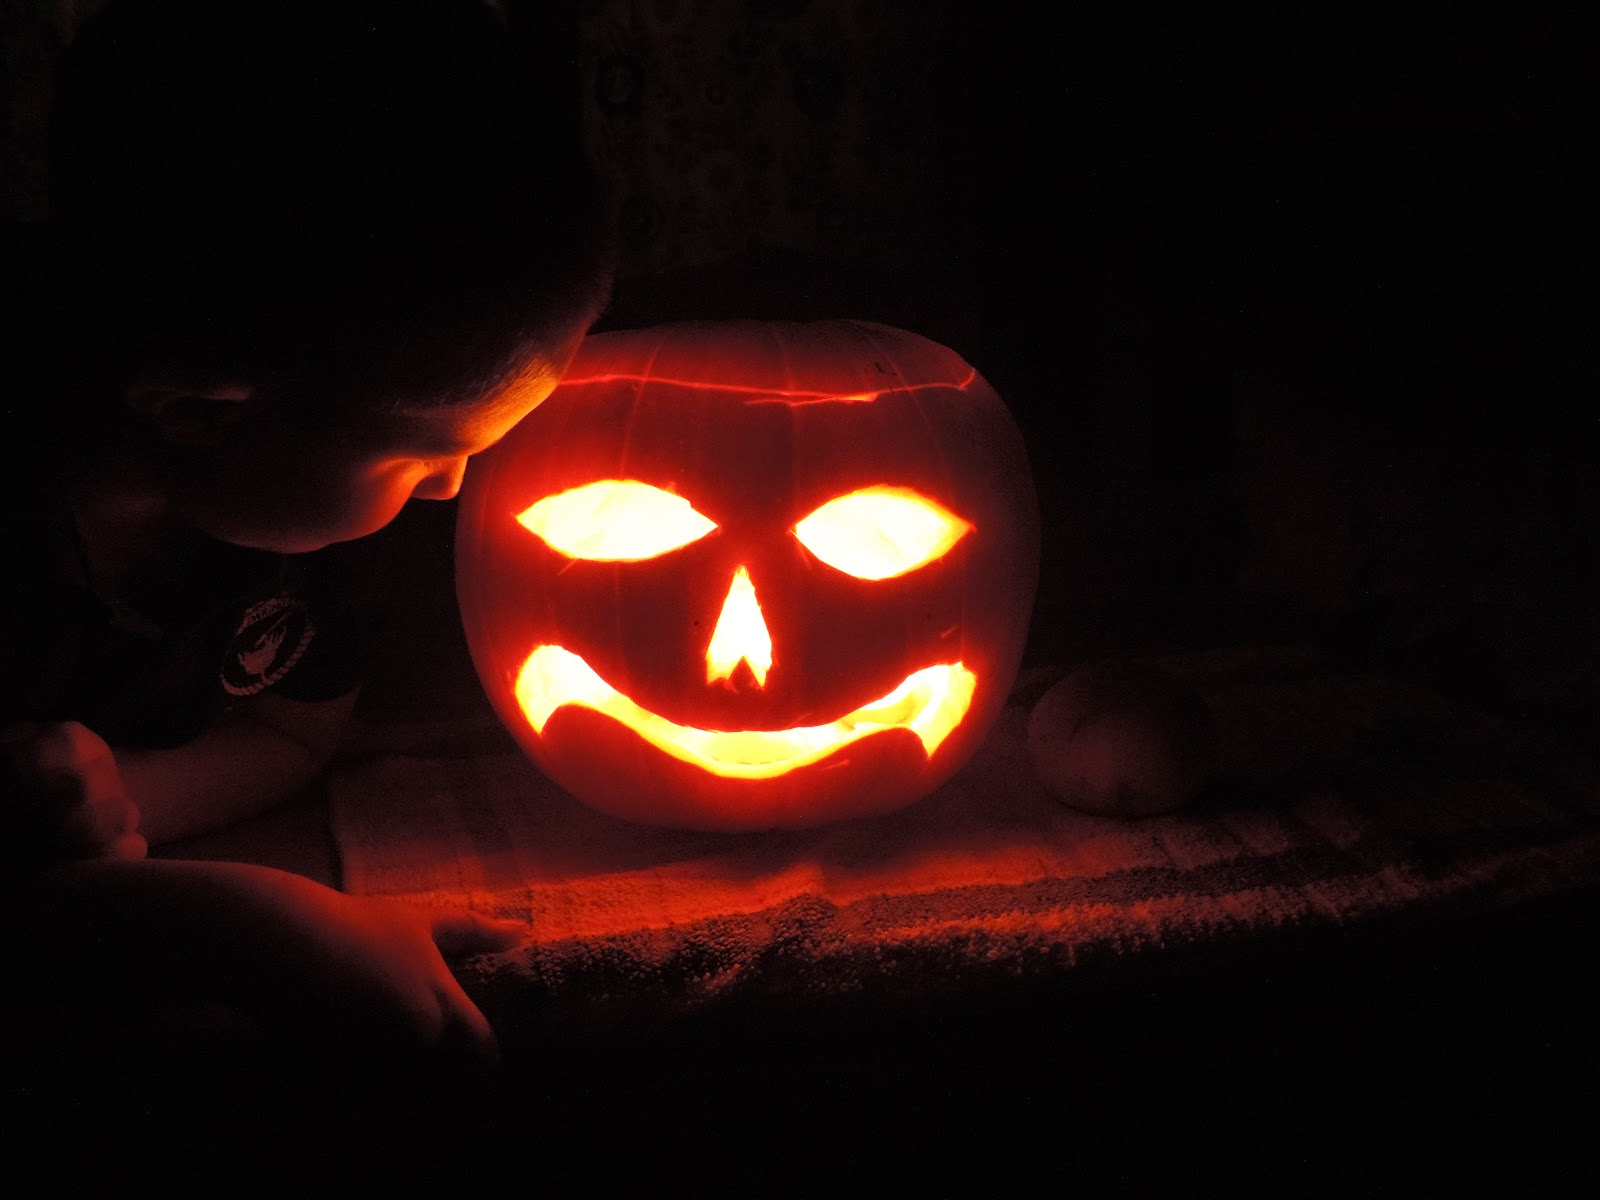 carved pumpkin for halloween with face and 3 candles inside